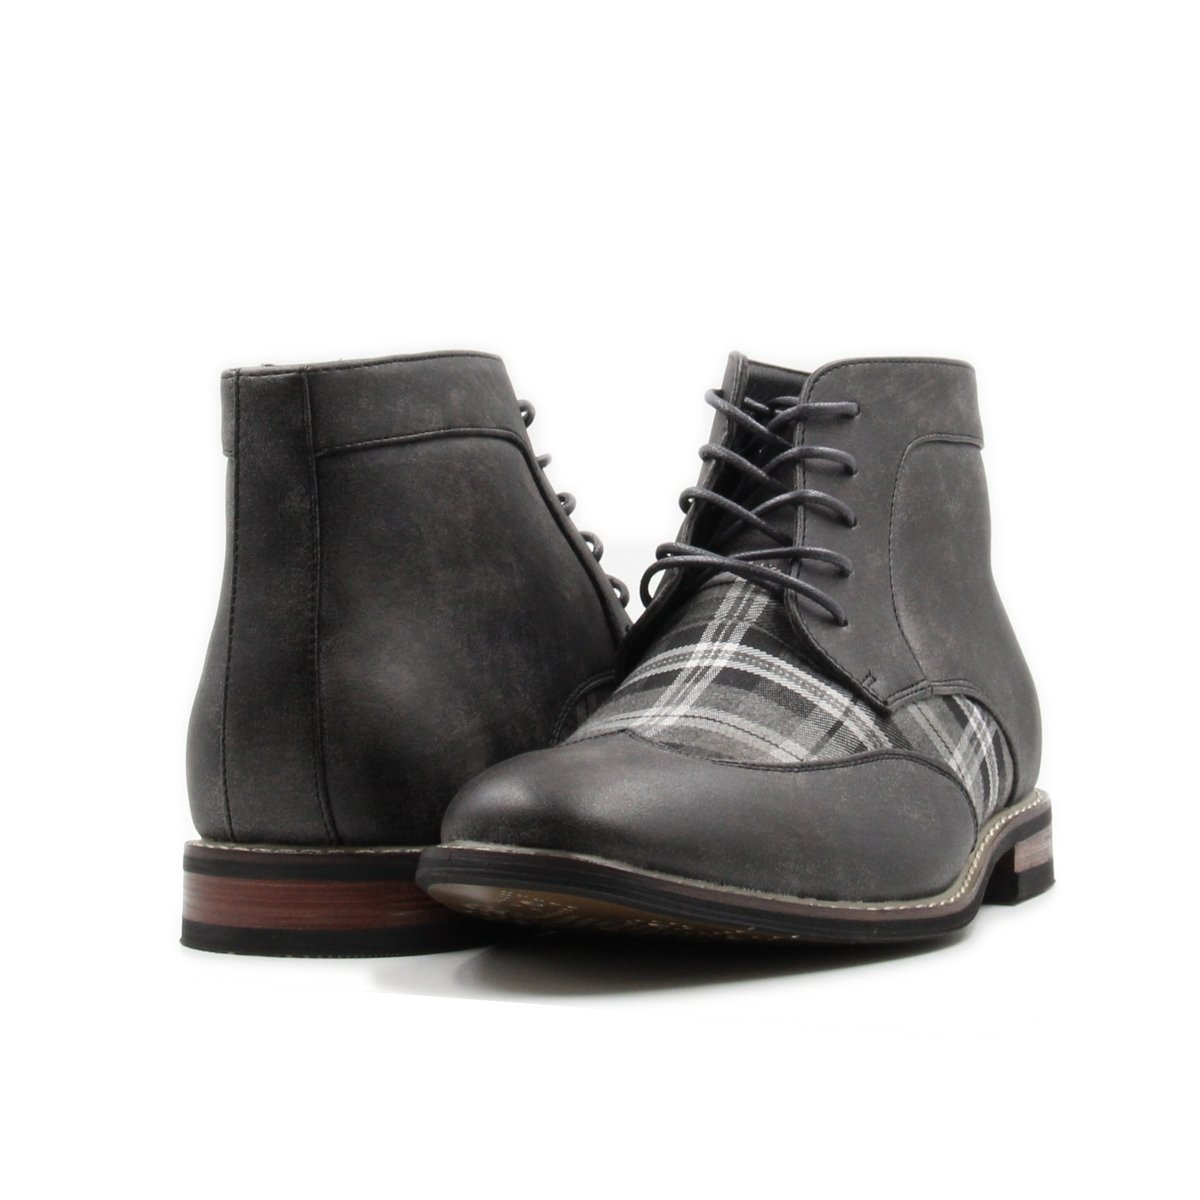 Men's Lace up Plaid Oxford Wing Tip Dress Classic Formal Ankle Boots (10, Grey/Grey/White)